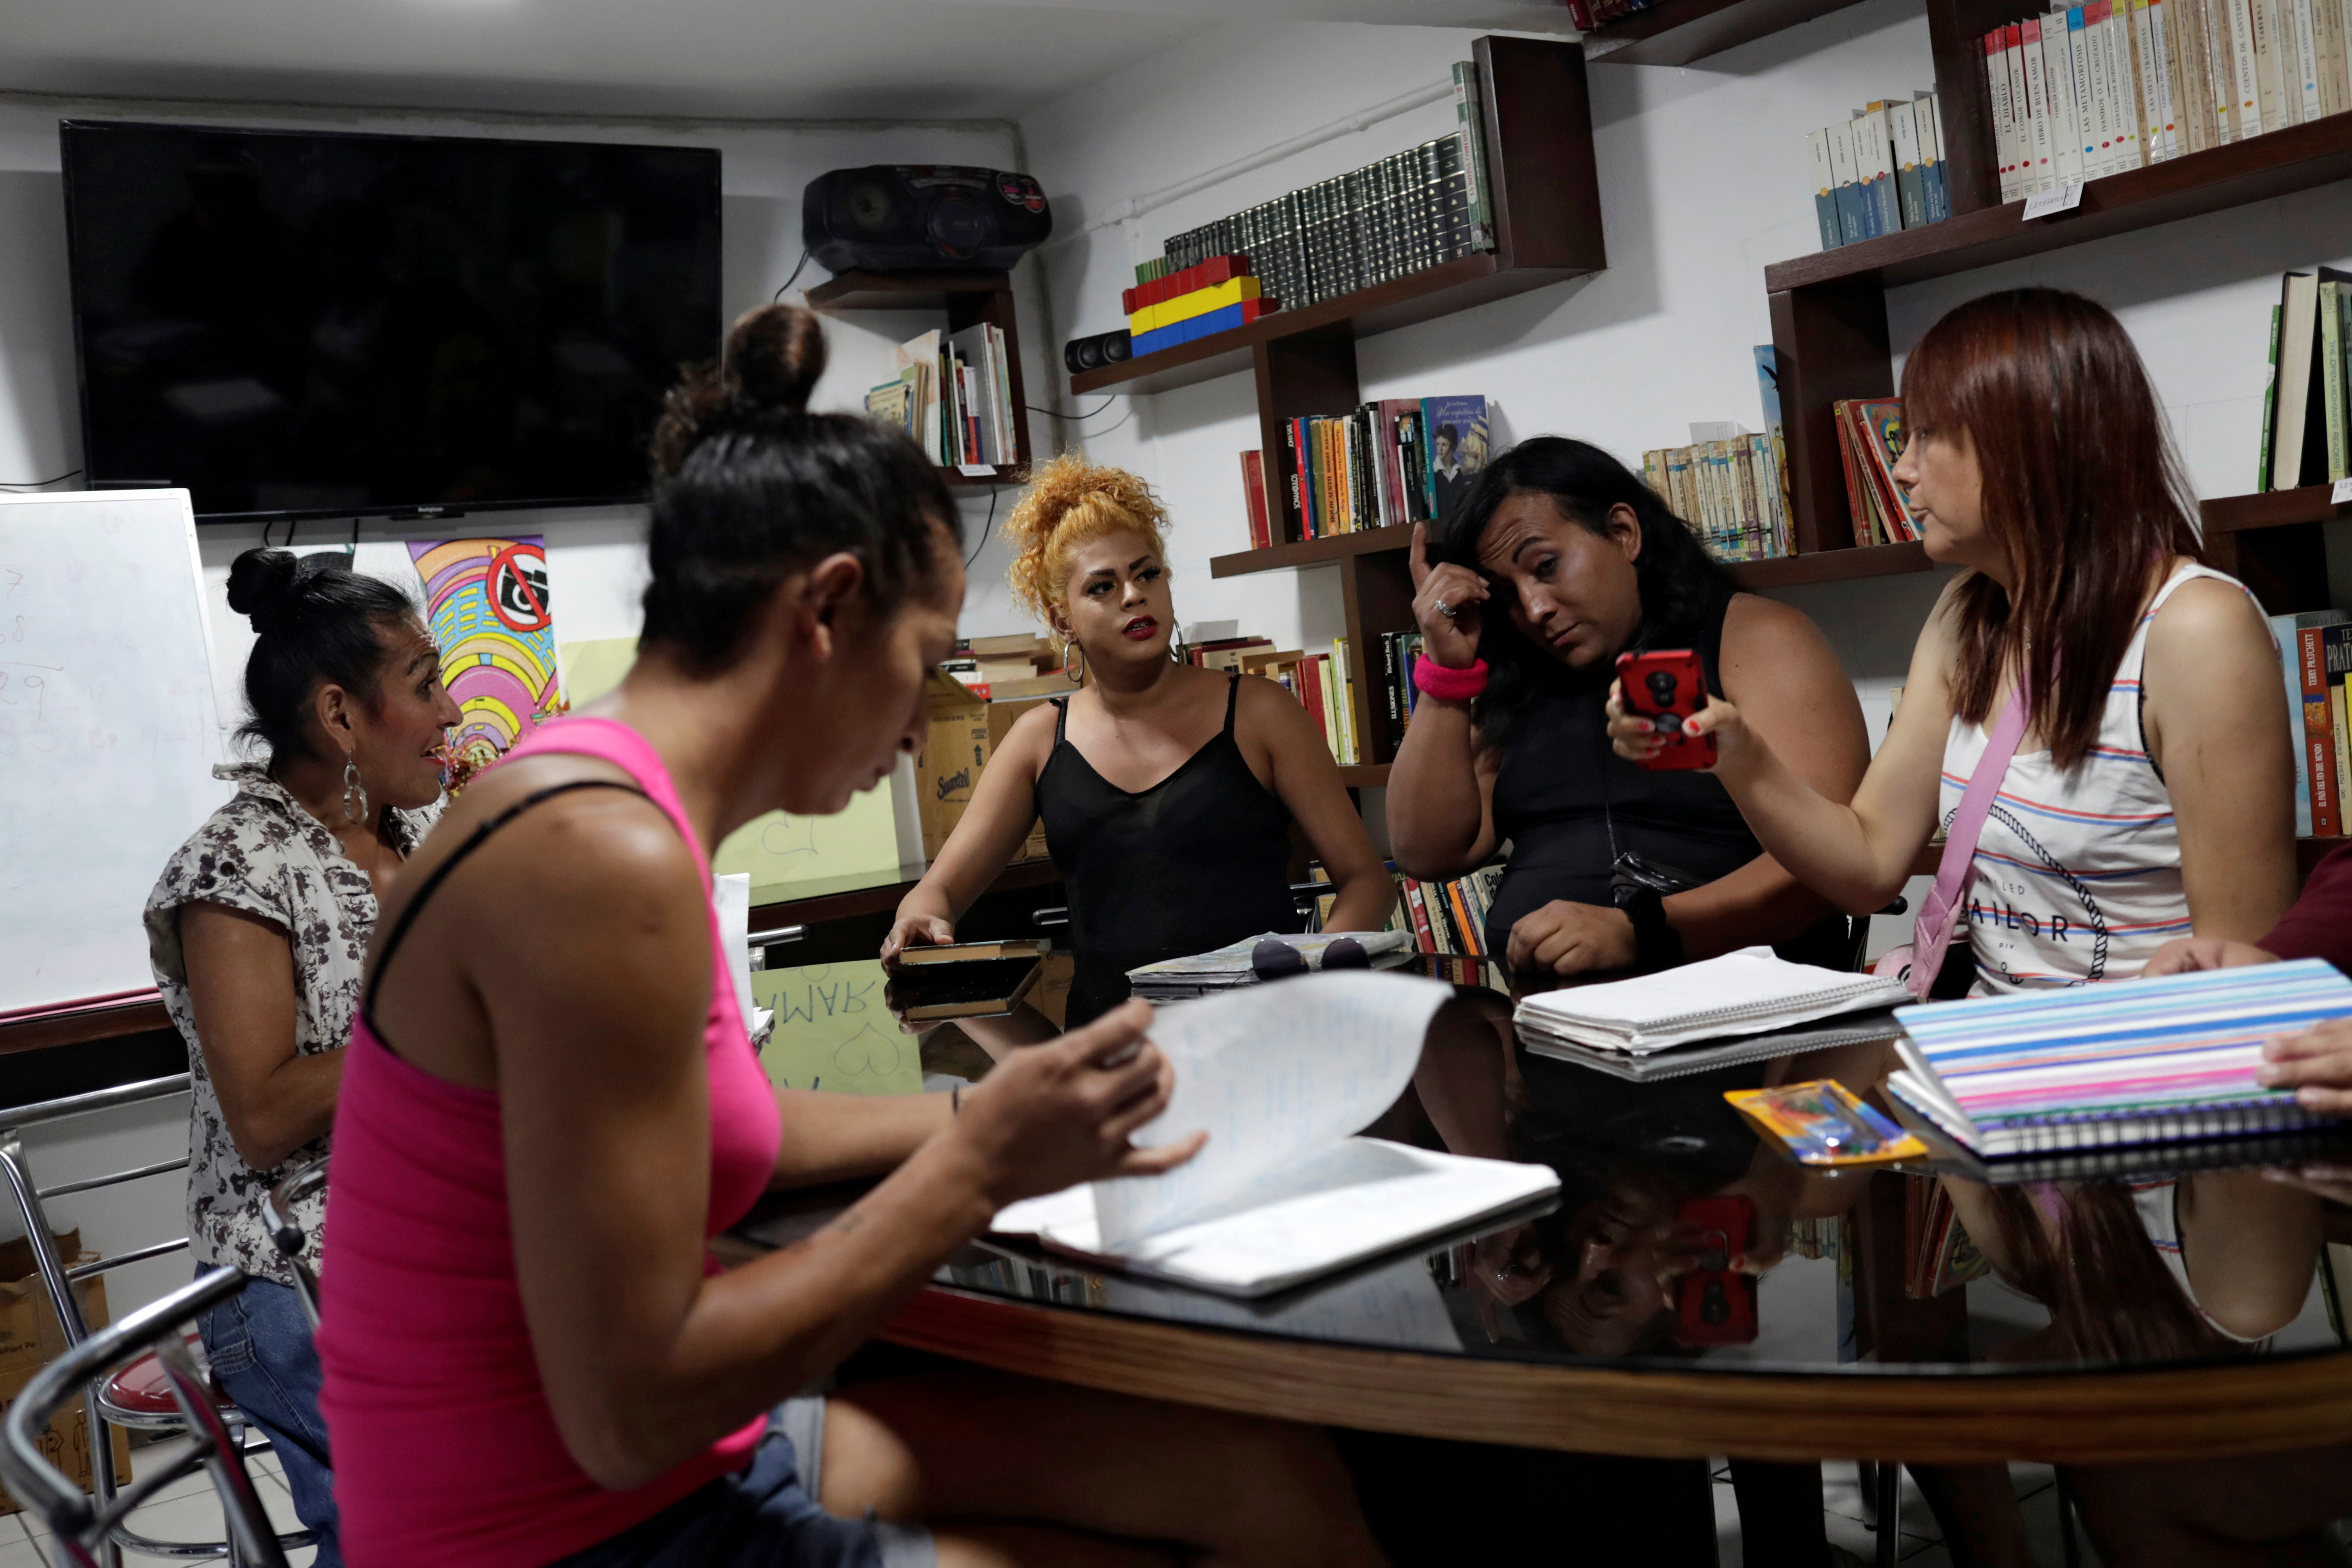 Transgender Mexicans speak inside a study room in a shelter, after the hotels where they were residing shut down during the pandemic.